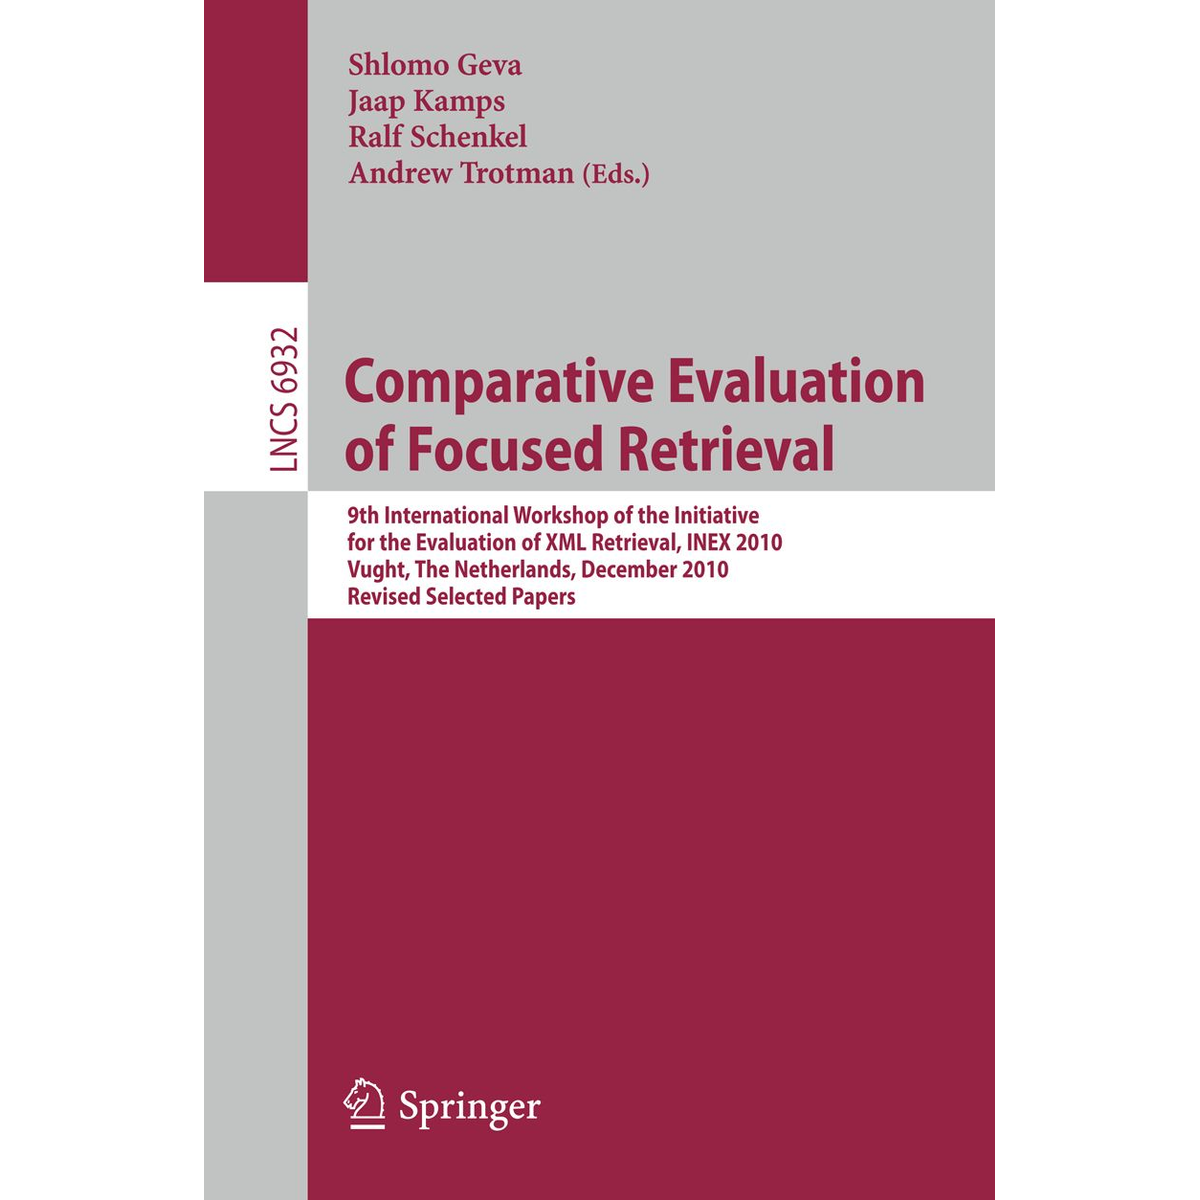 Comparative Evaluation of Focused Retrieval - 9th International Workshop of the Inititative for the Evaluation of XML Retrieval, INEX 2010, Vught, The Netherlands, December 13-15, 2010, The Netherlands, Revised Selected Papers